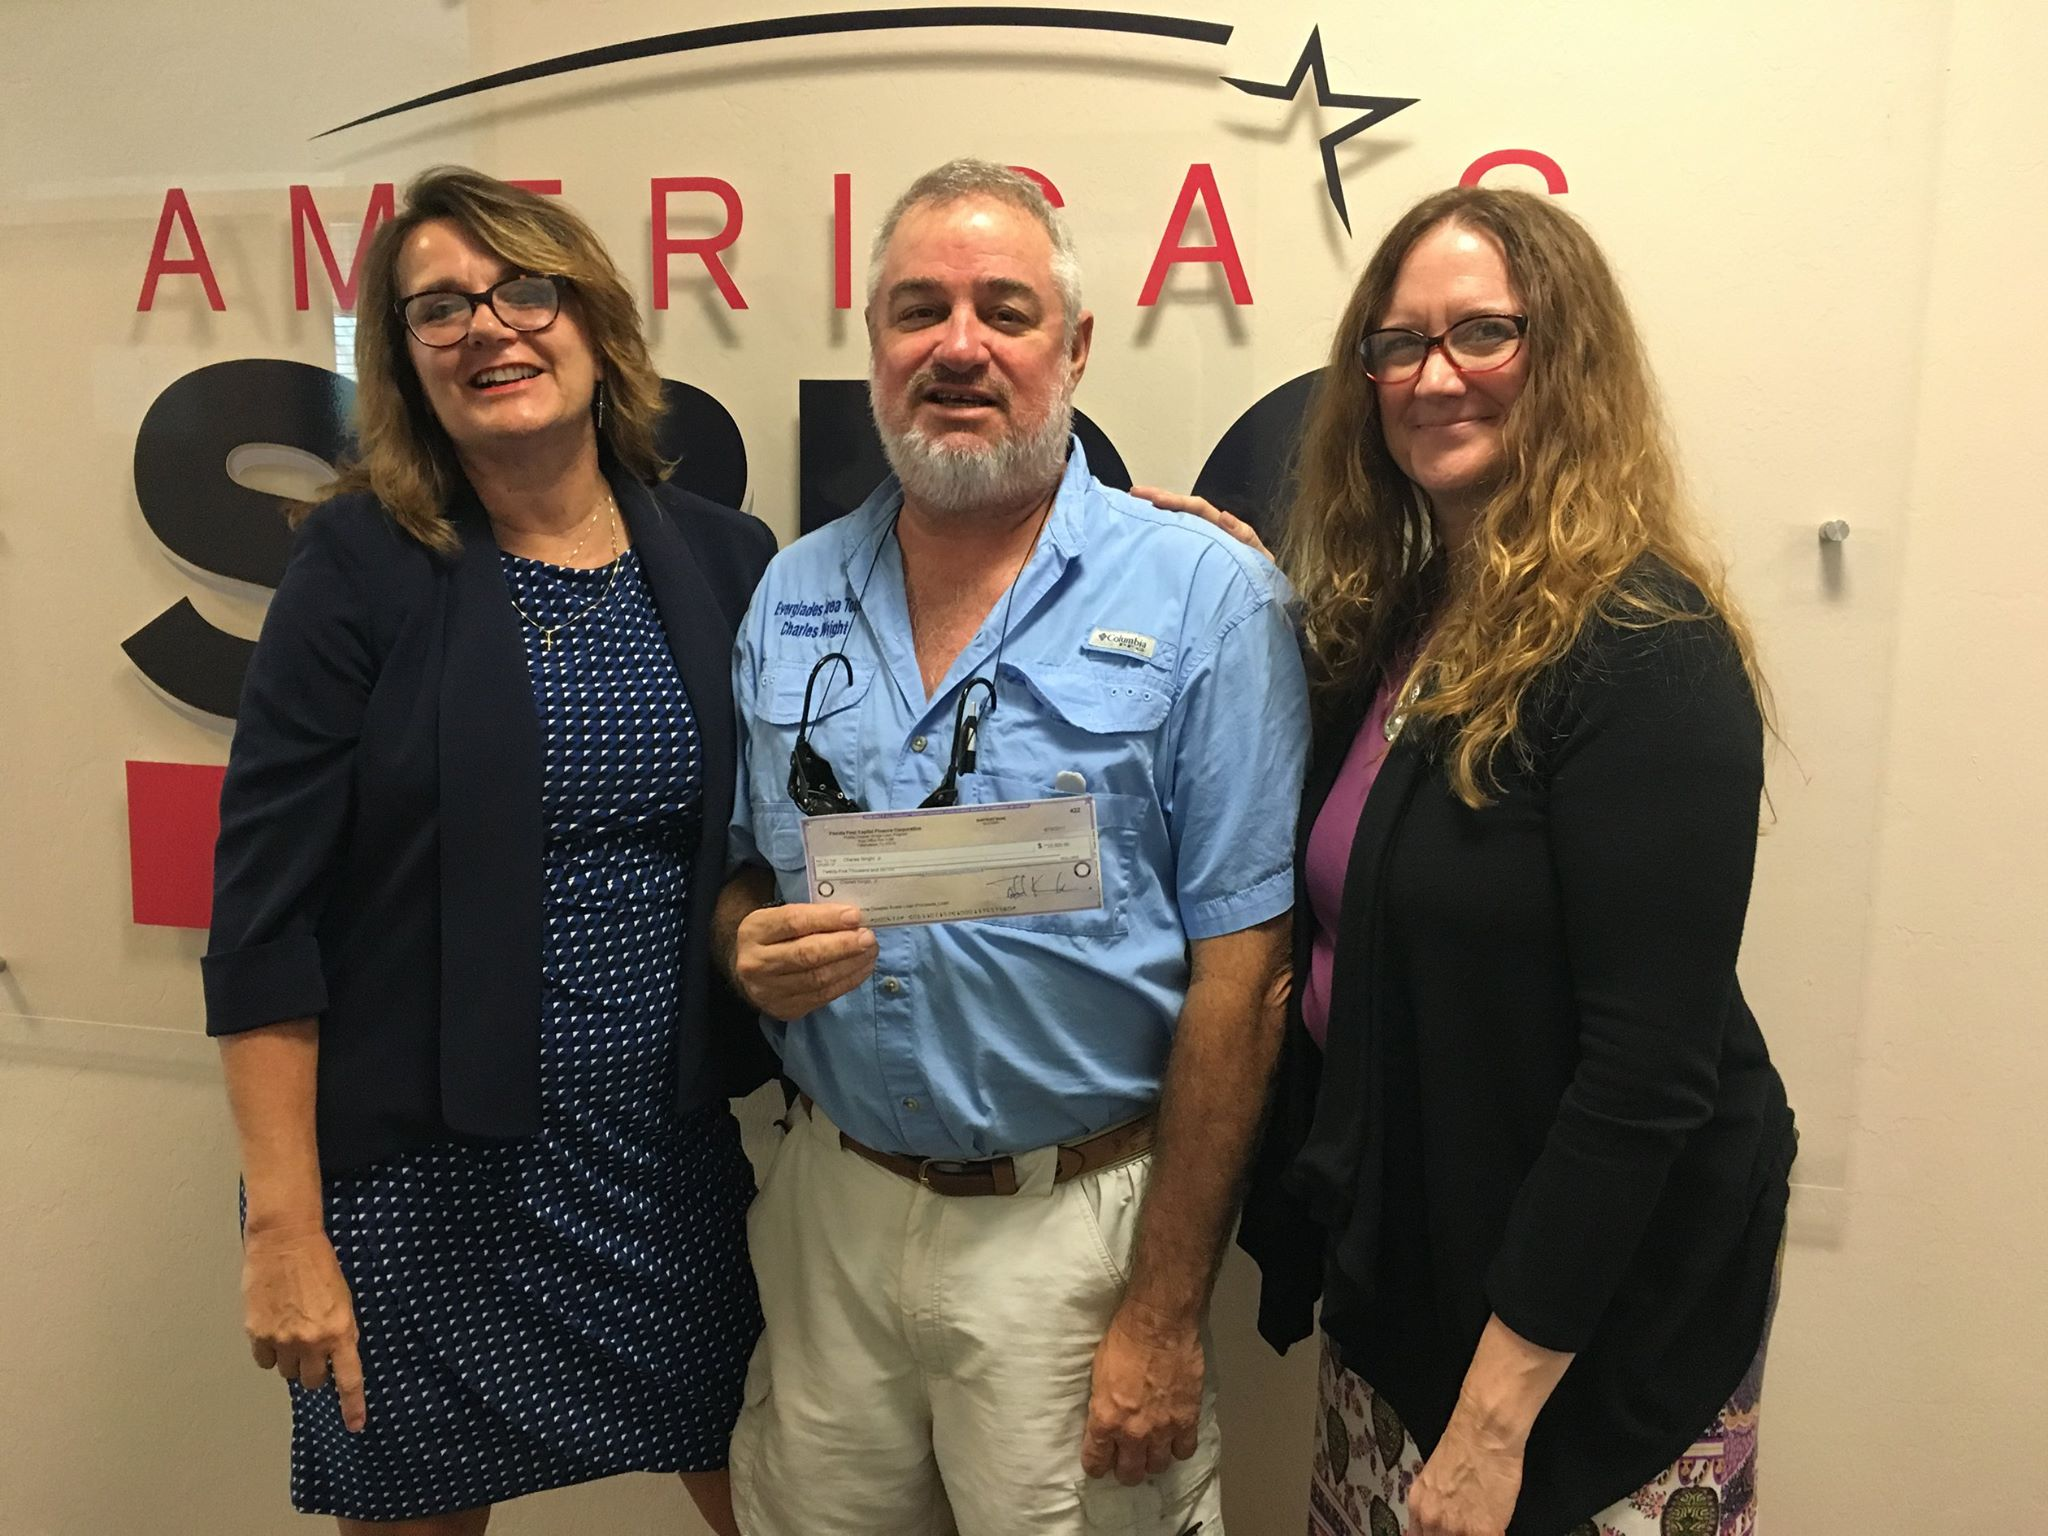 Everglades Area Tours secures an emergency bridge loan to recover from Hurricane Irma with help from the Florida SBDC at FGCU.